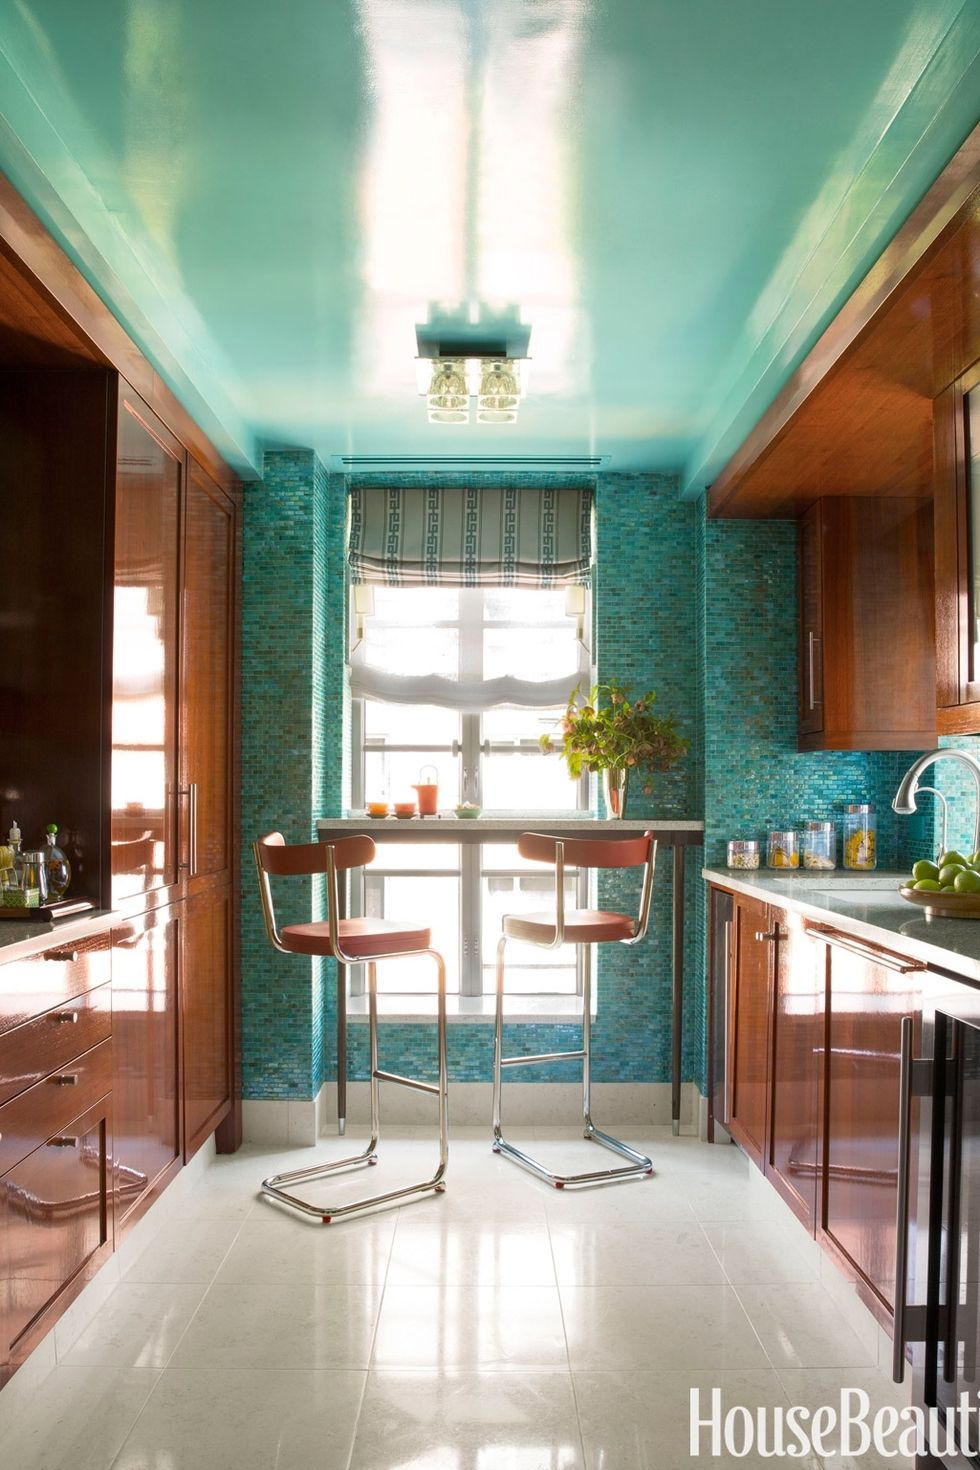 1424211135-hbx-teal-lacquered-kitchen-0713.jpg